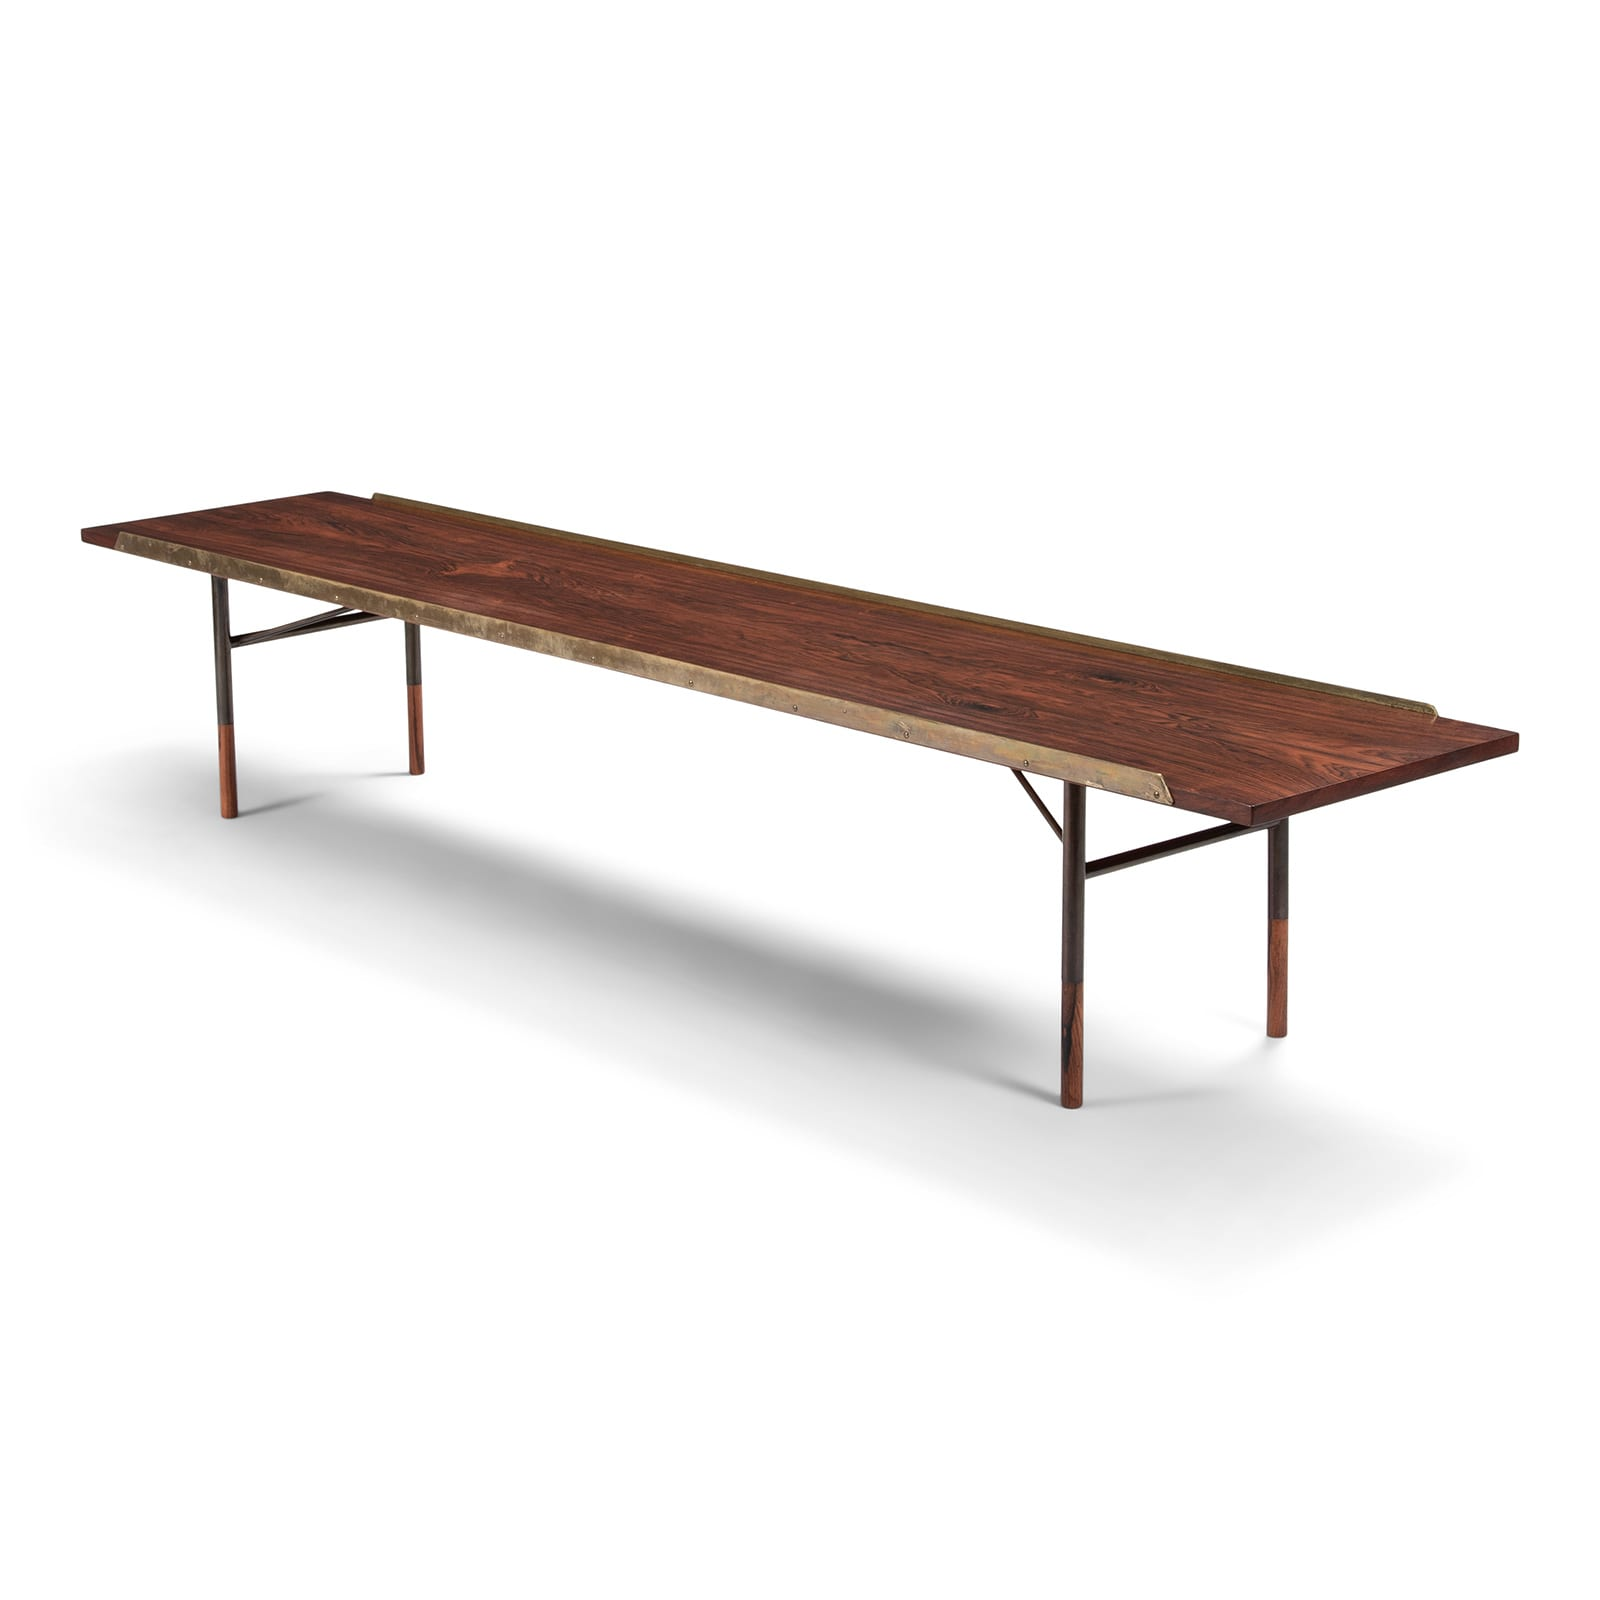 A table bench, model BO101